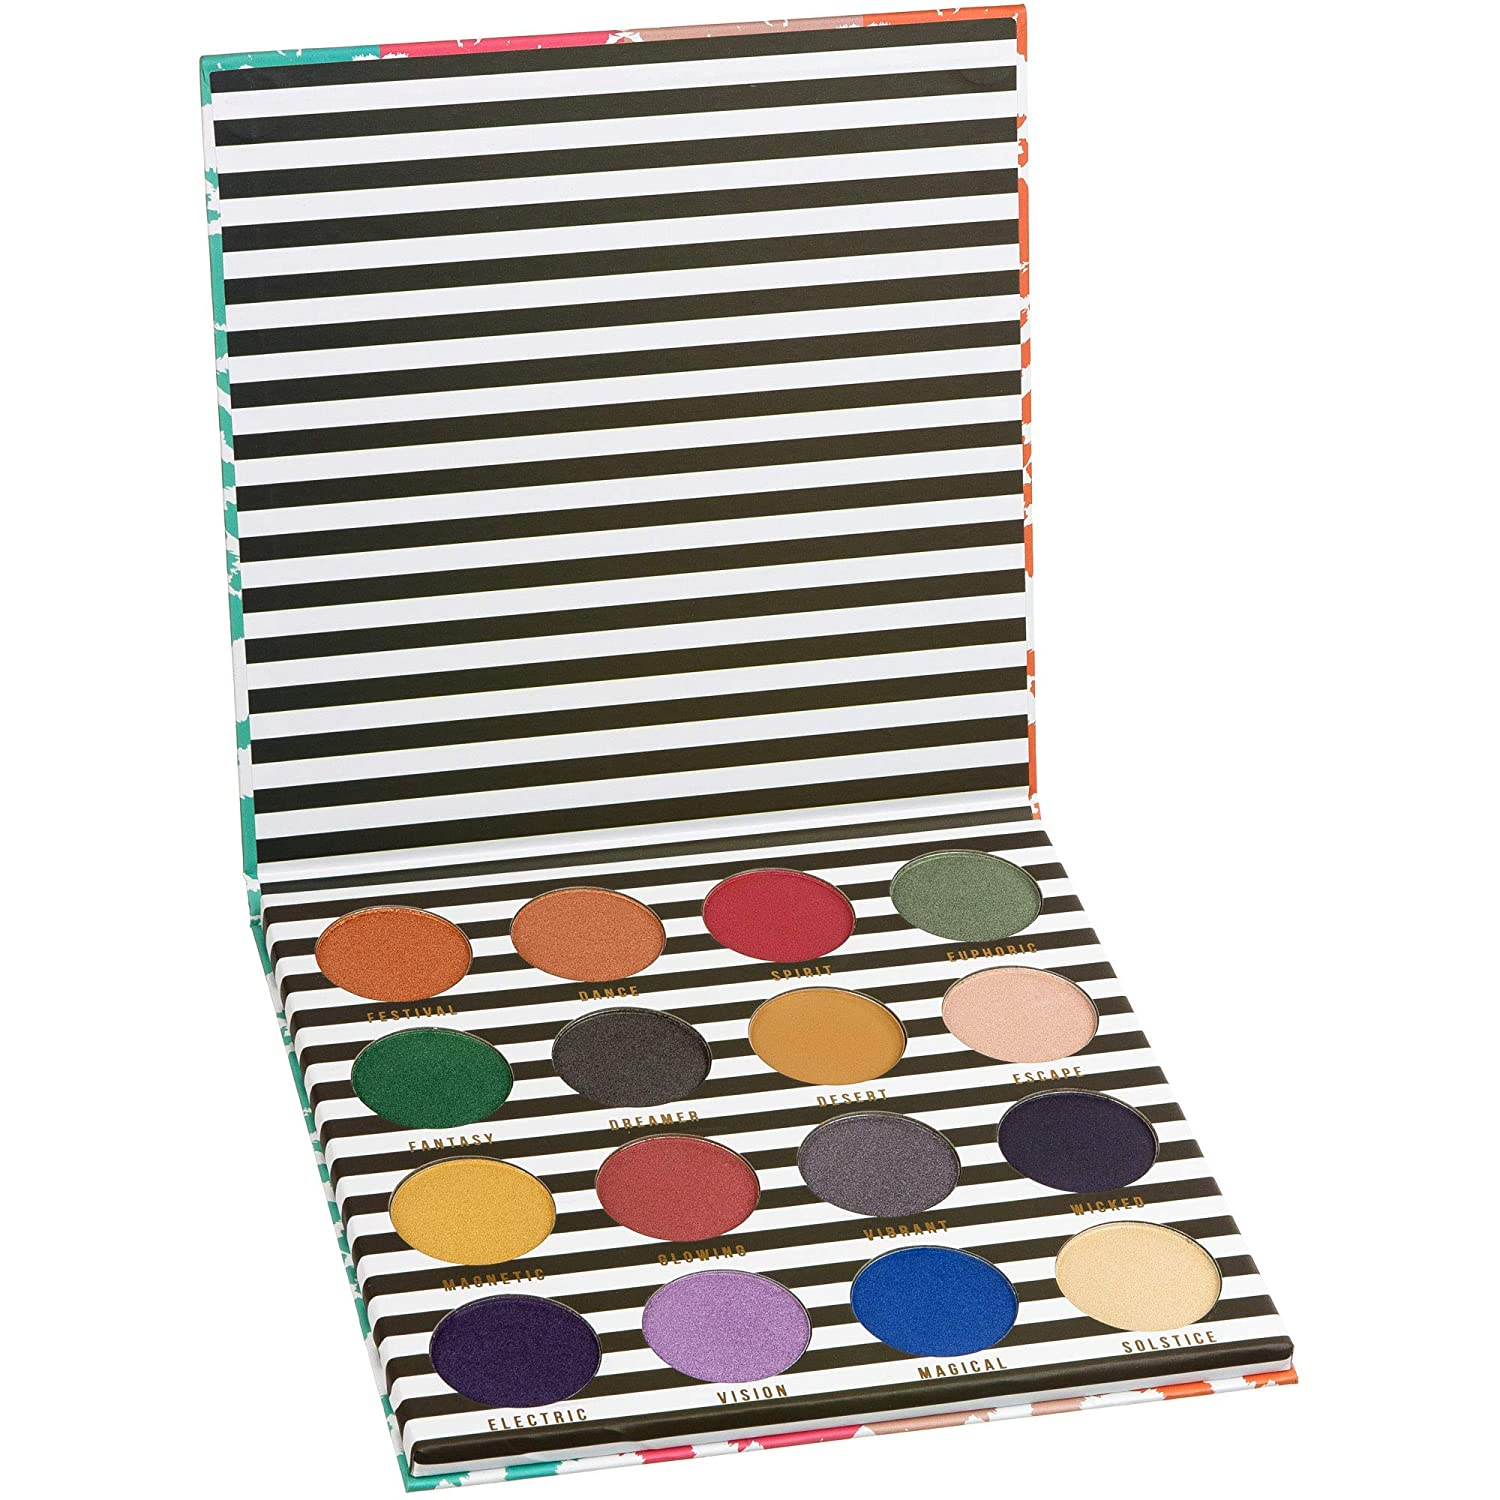 Color Story Women's Cosmetics FESTIVE FEEL Pressed Pigment Eyeshadow Palette – 16 Bold Shimmer & Matte Shades